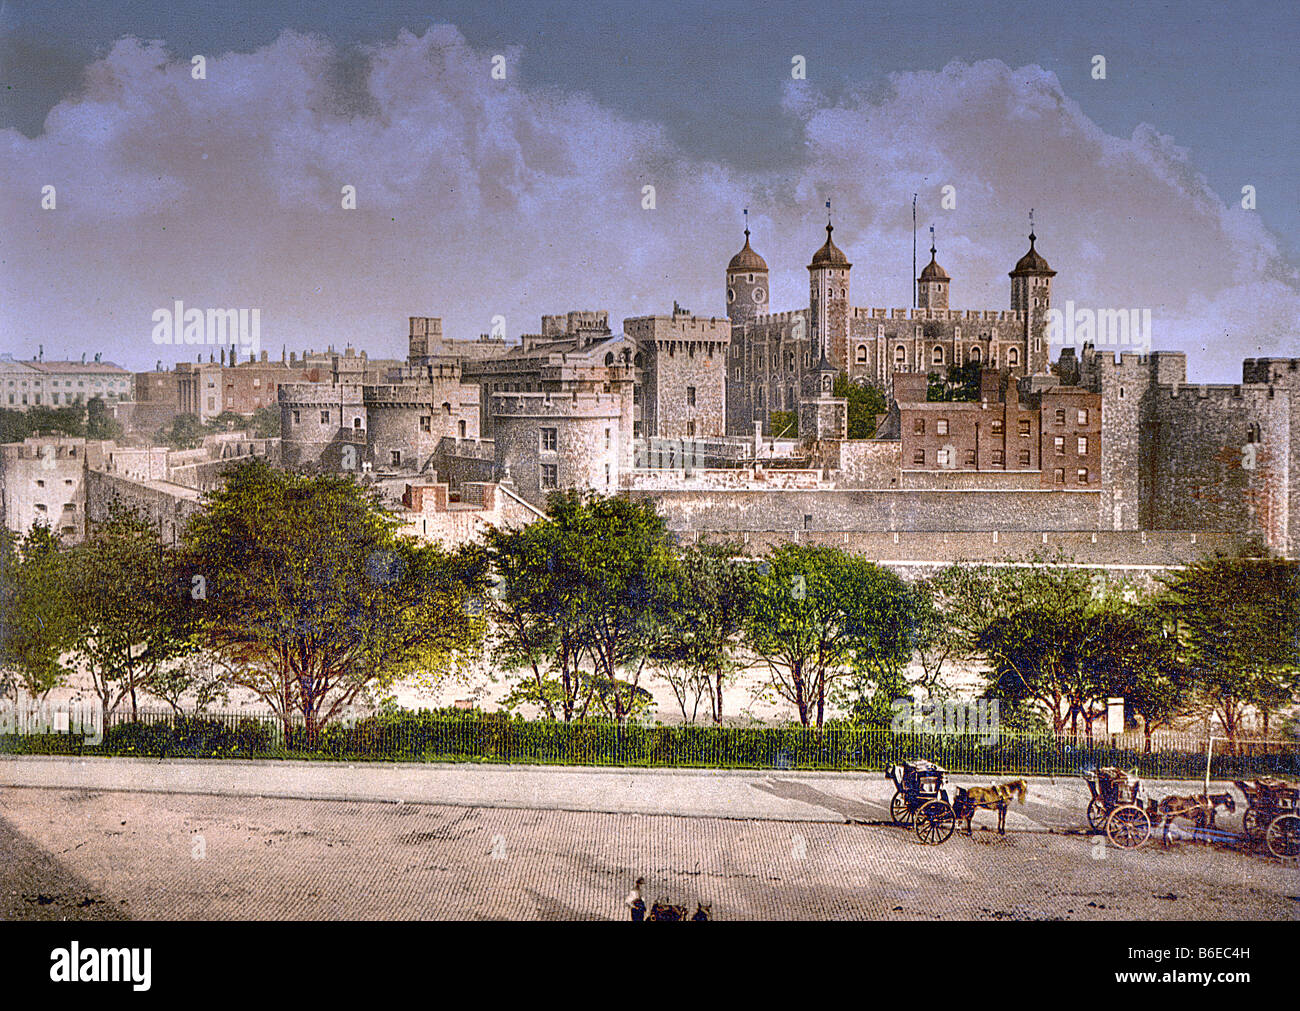 Tower of London, England circa 1890 to 1910 - Carefully restored, re-master repaired and colors enhanced to its - Stock Image